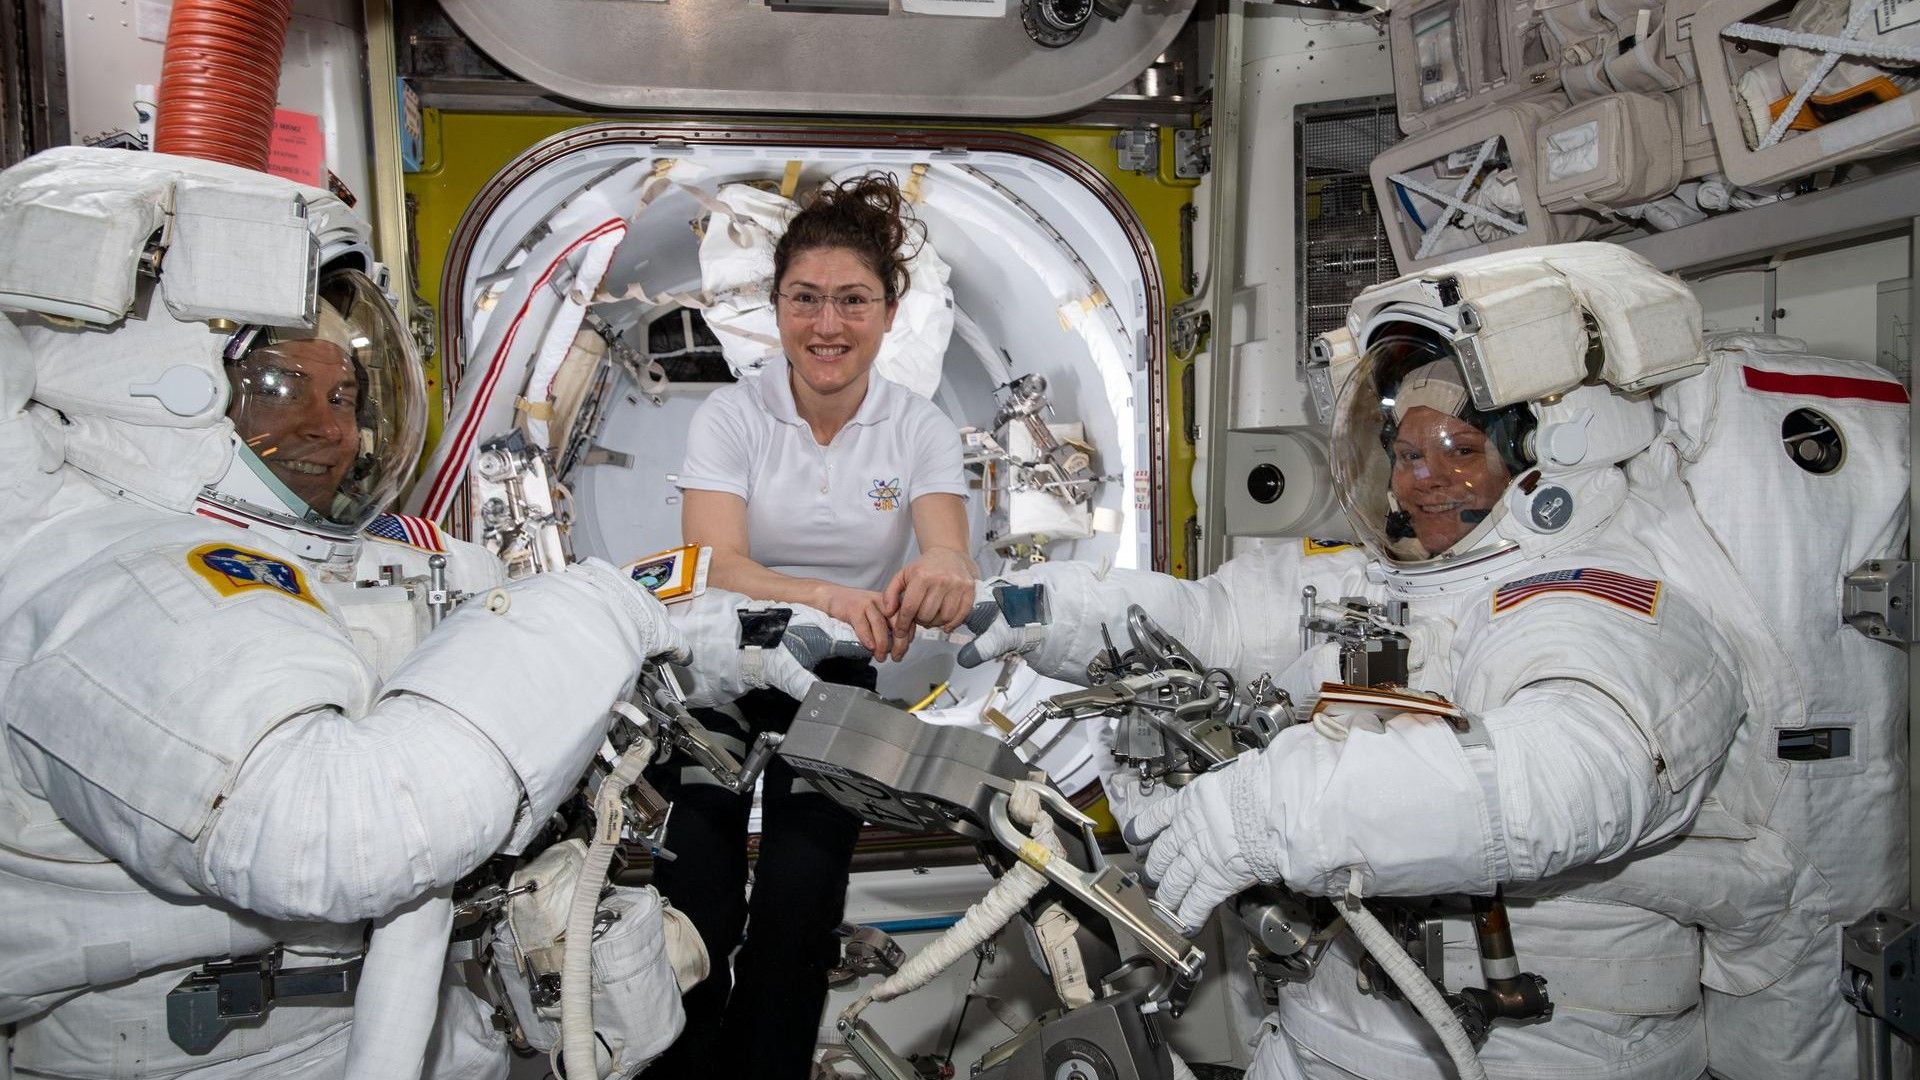 NASA just cancelled the first all-female spacewalk for a super-depressing reason